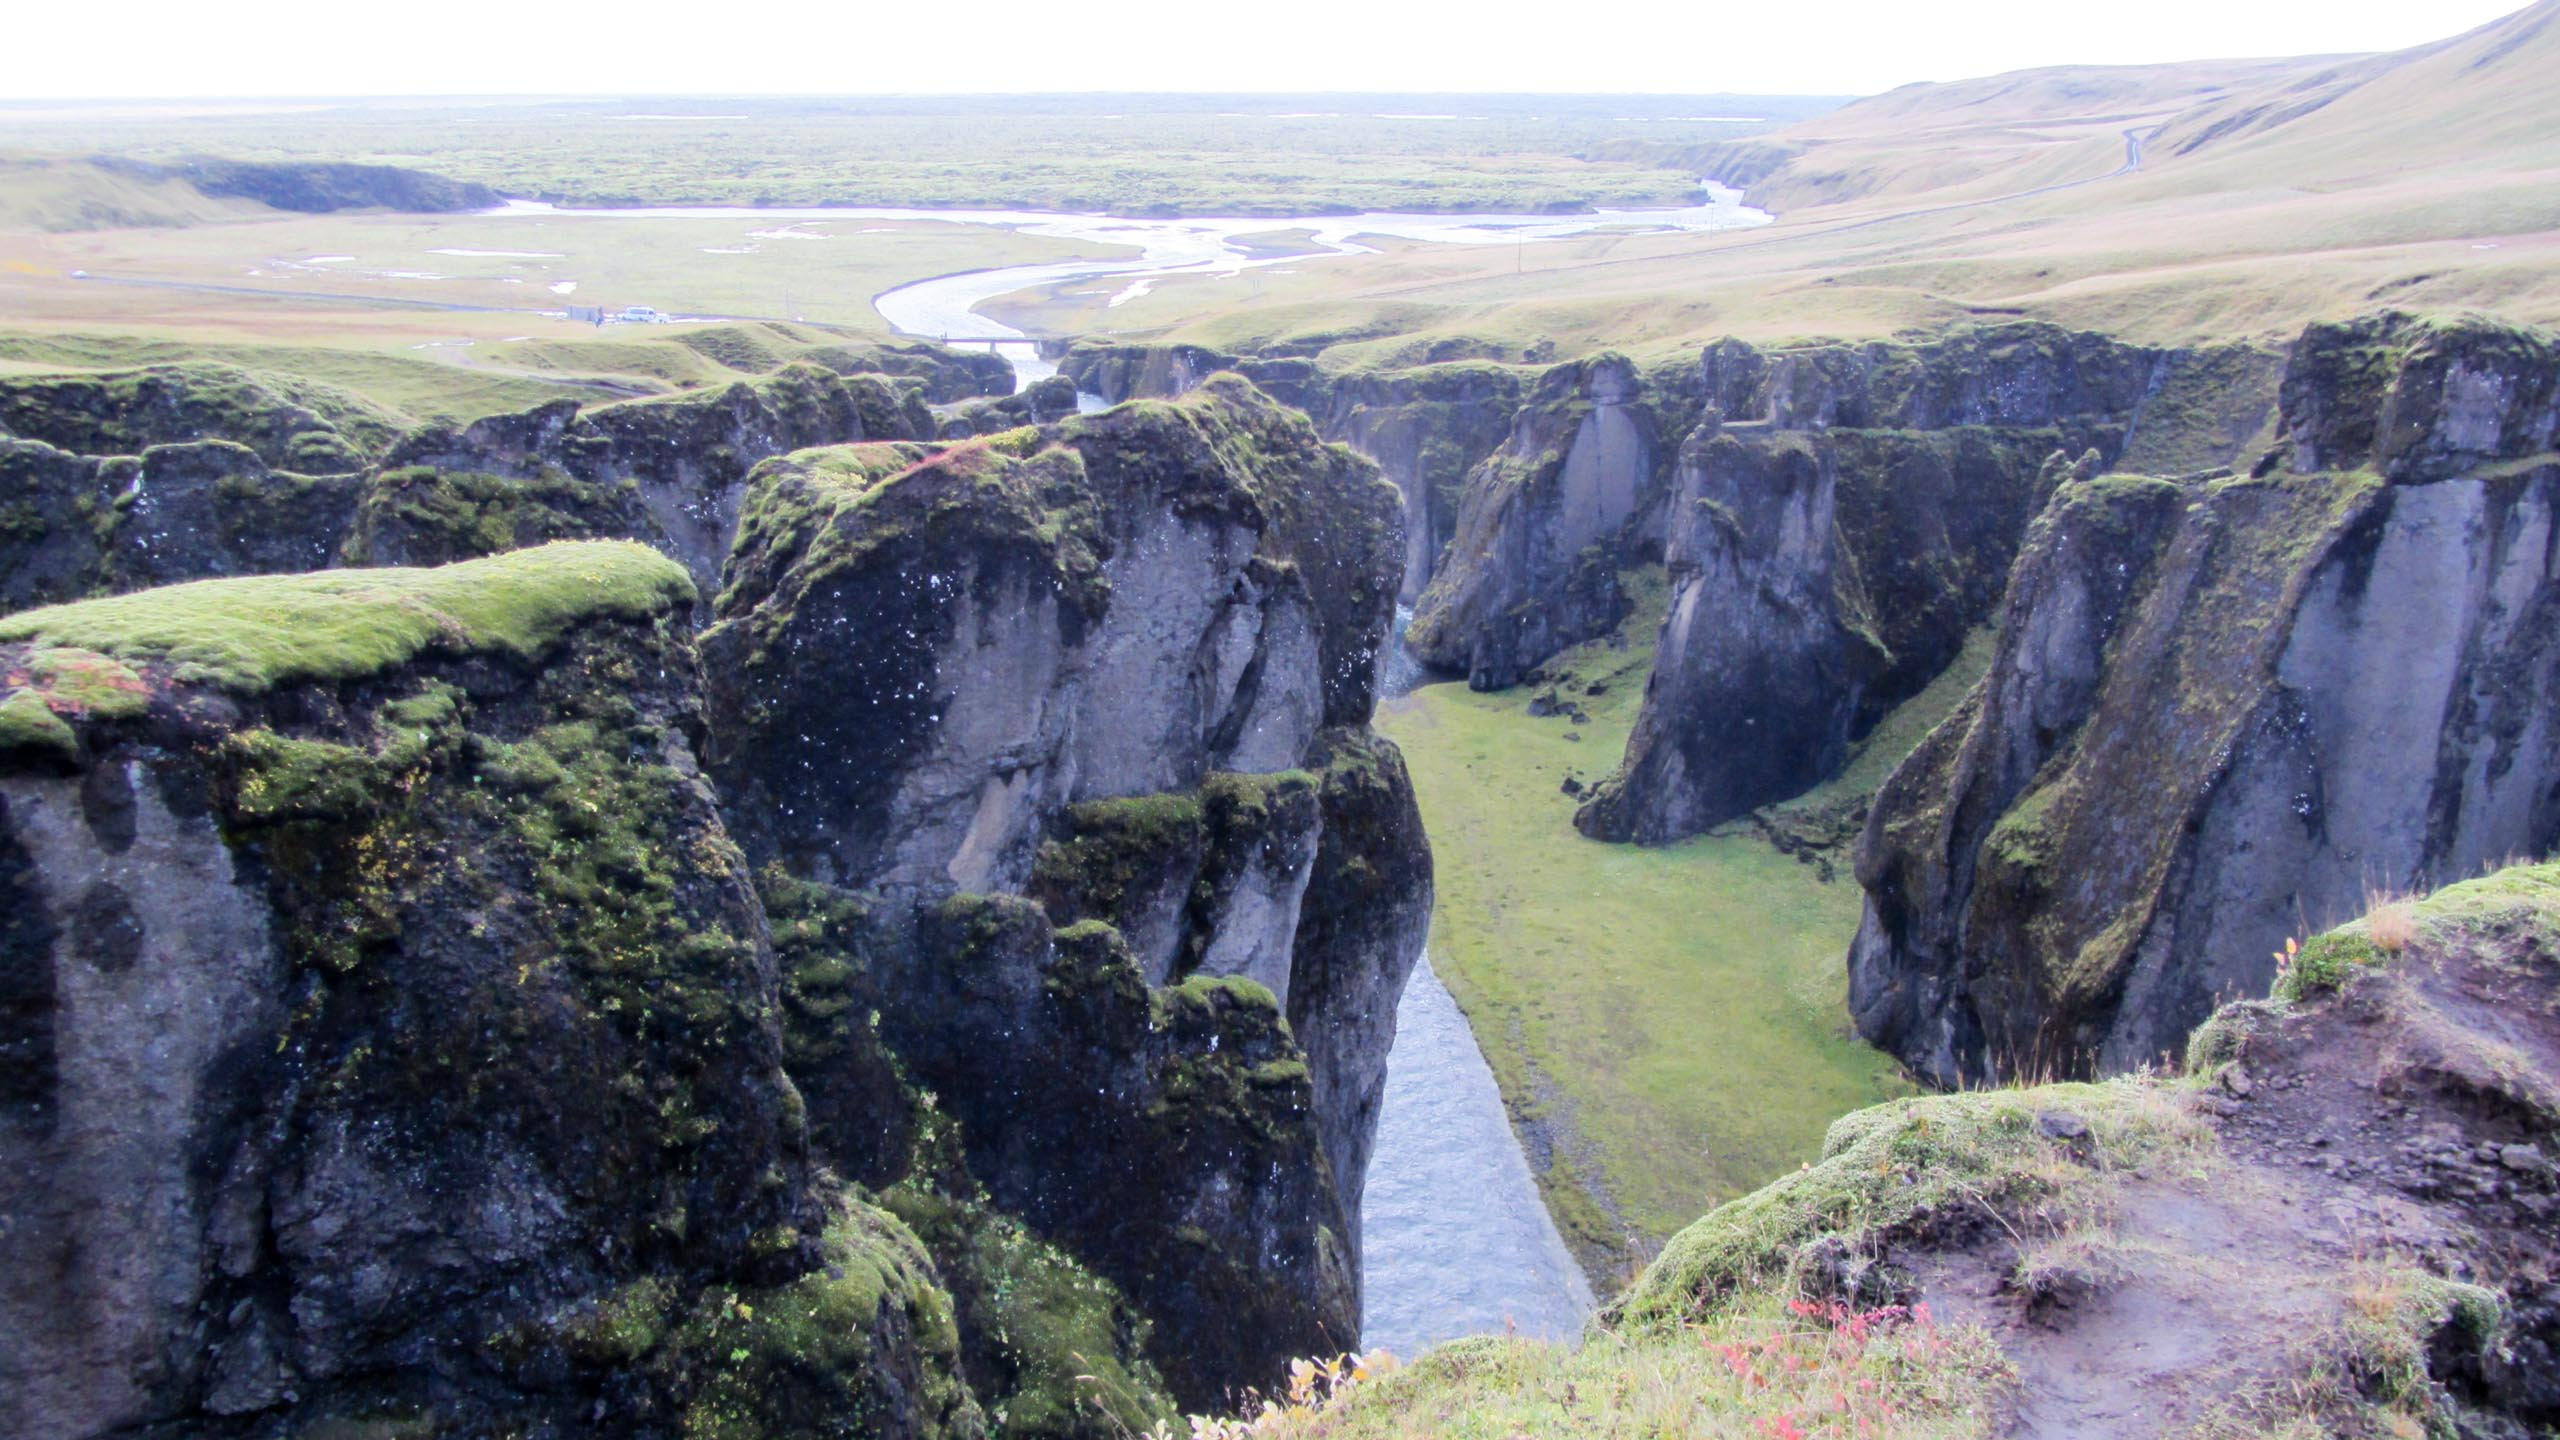 Fjord cuts through Iceland landscape